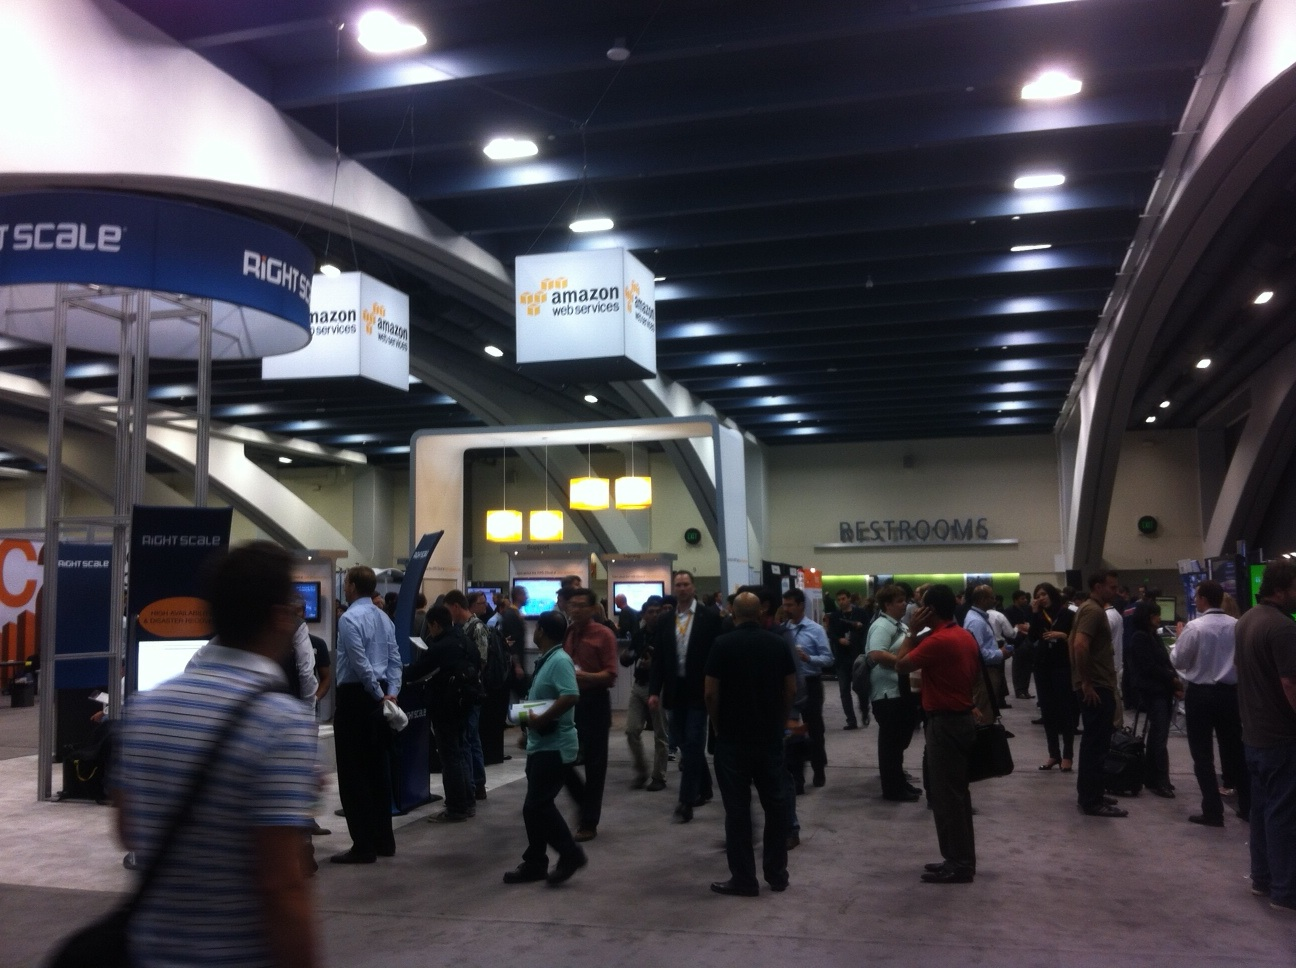 Conference attendees walk the exhibition floor at the AWS Summit 2013 in San Francisco, April 30, 2013